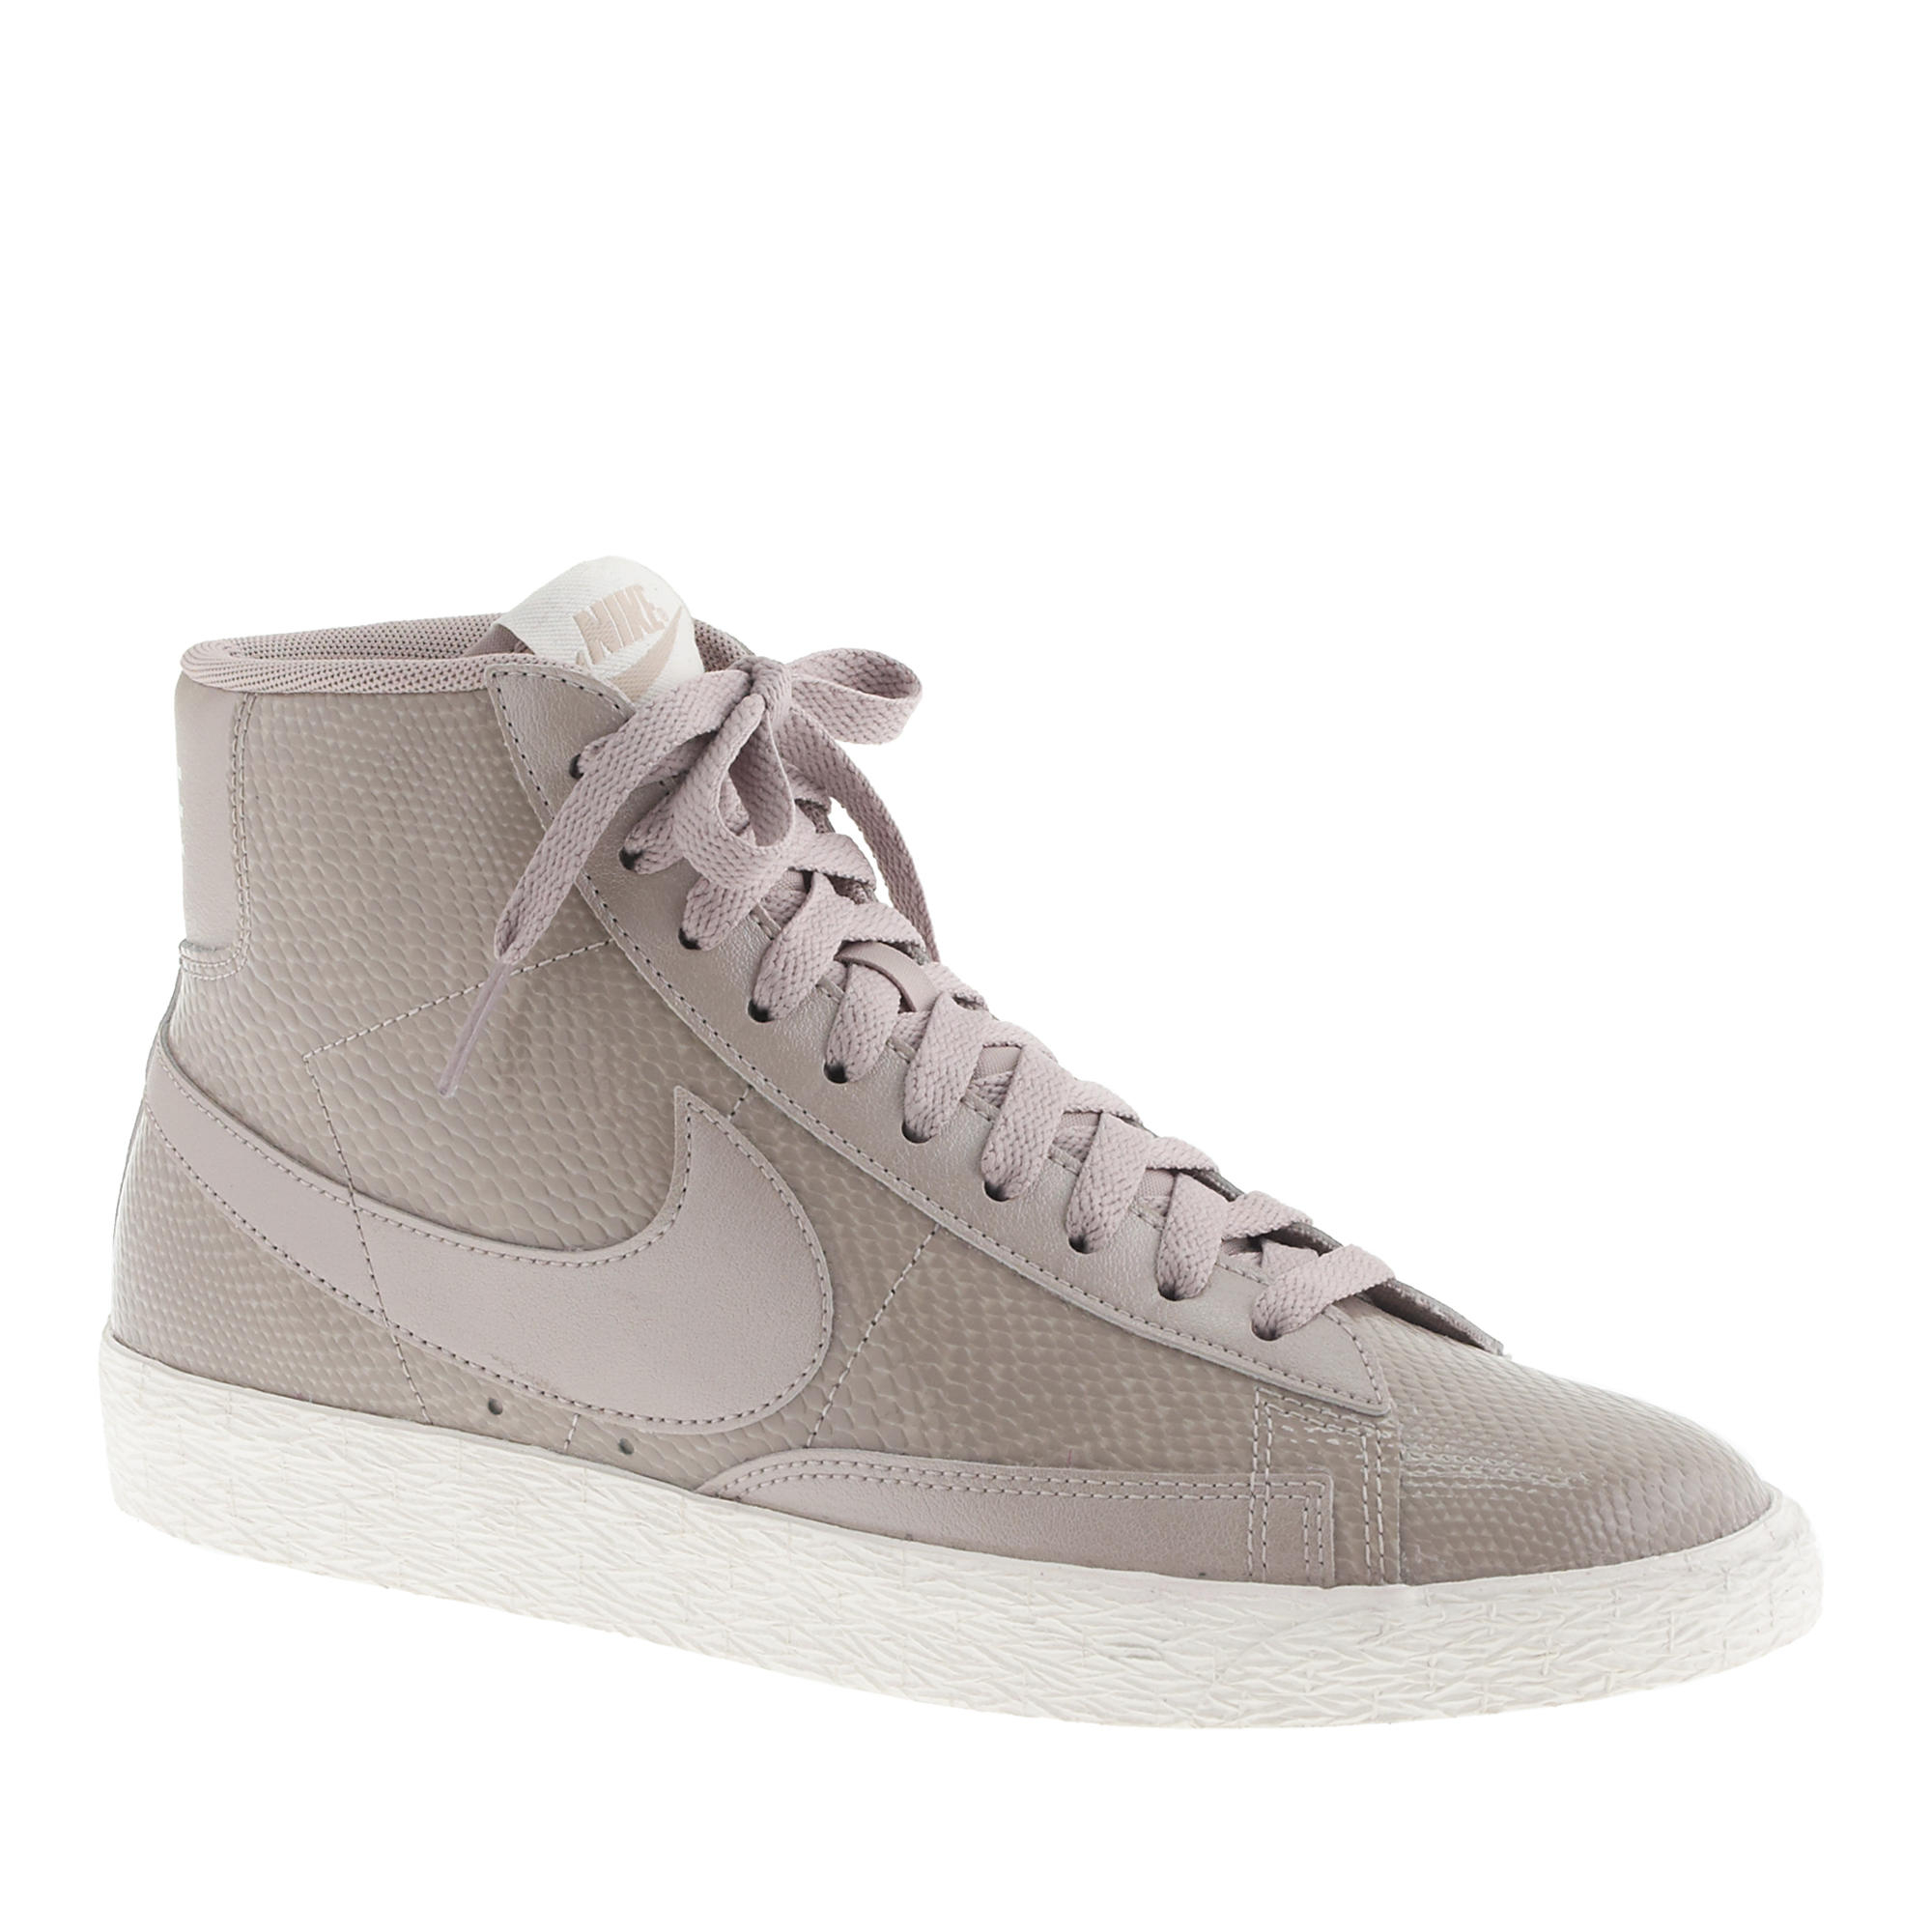 official photos 7164c 9e18c ... where to buy lyst j.crew womens nike blazer mid vintage sneakers in  gray 7f2a4